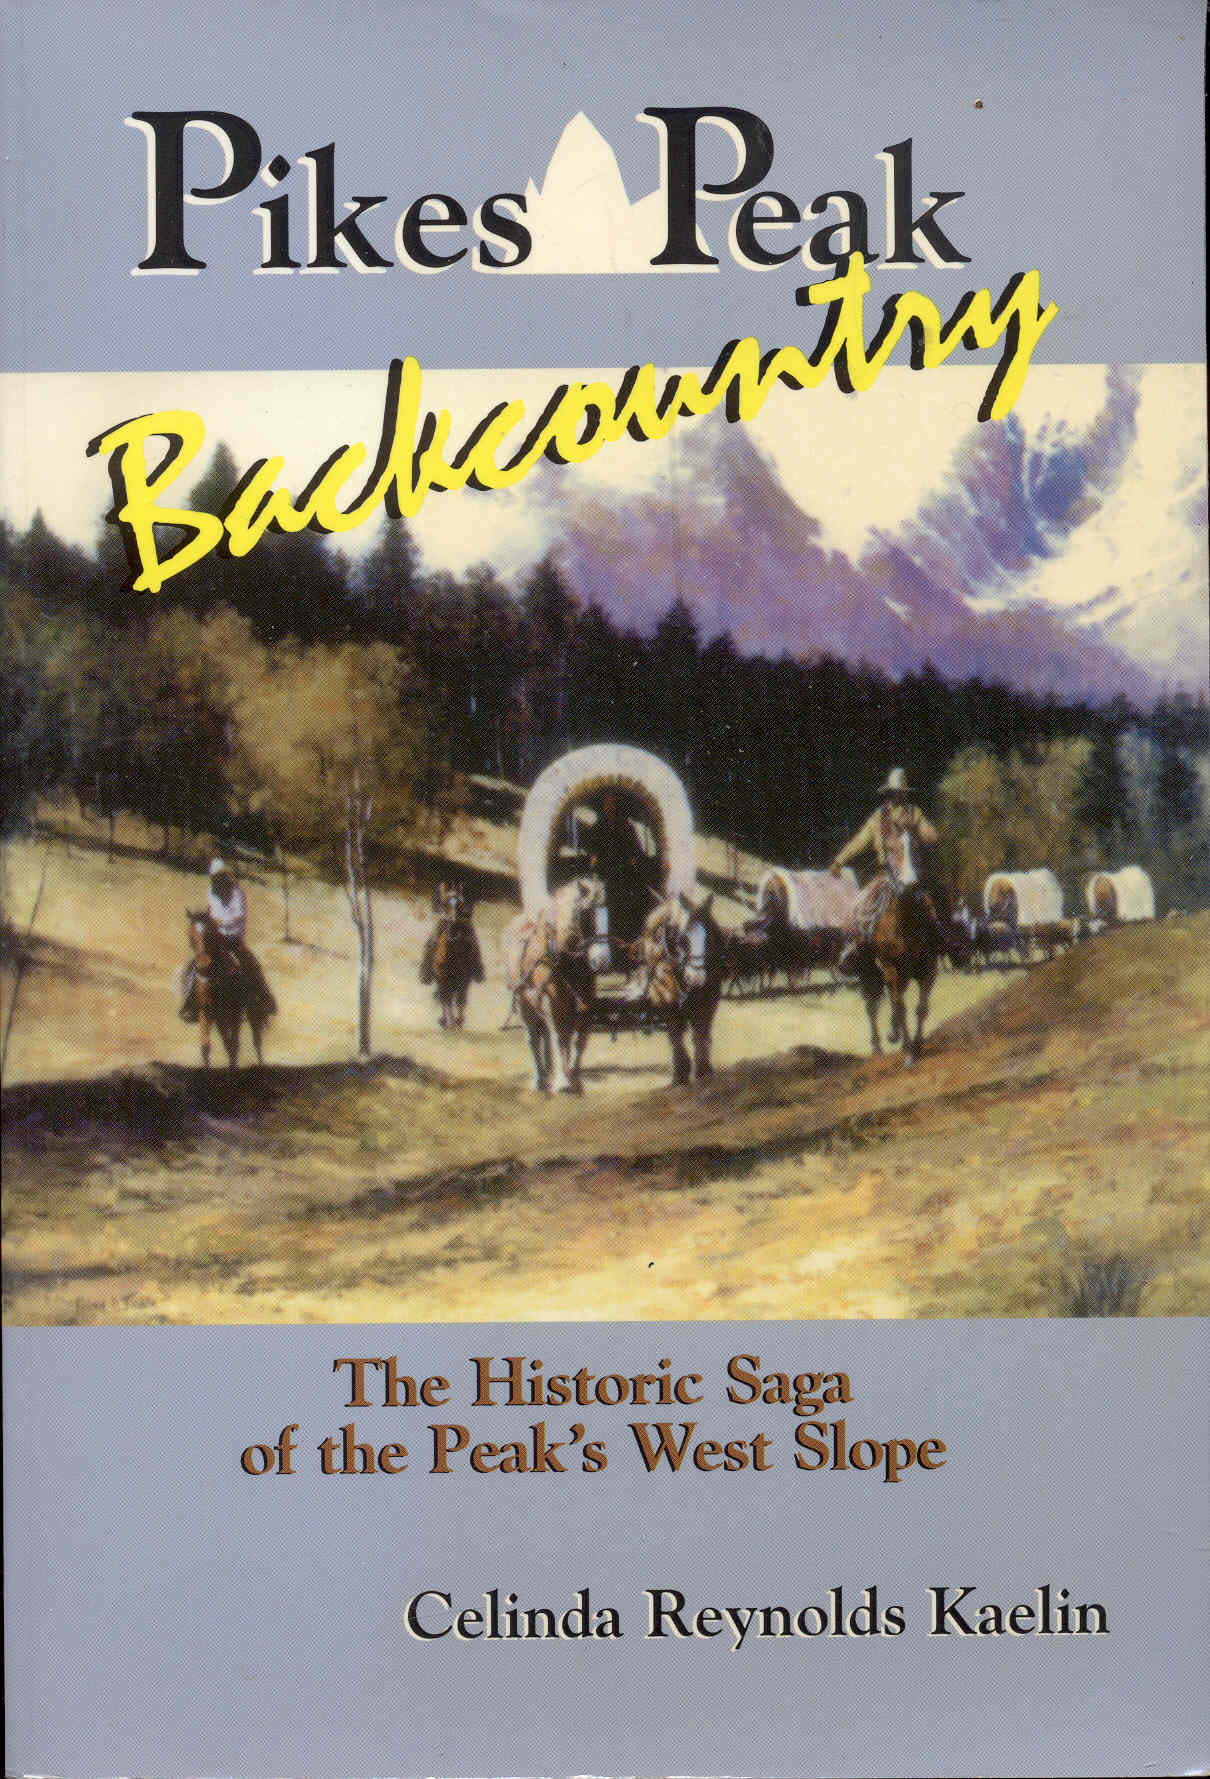 Image for Pikes Peak Backcountry: The Historic Saga of the Peak's West Slope